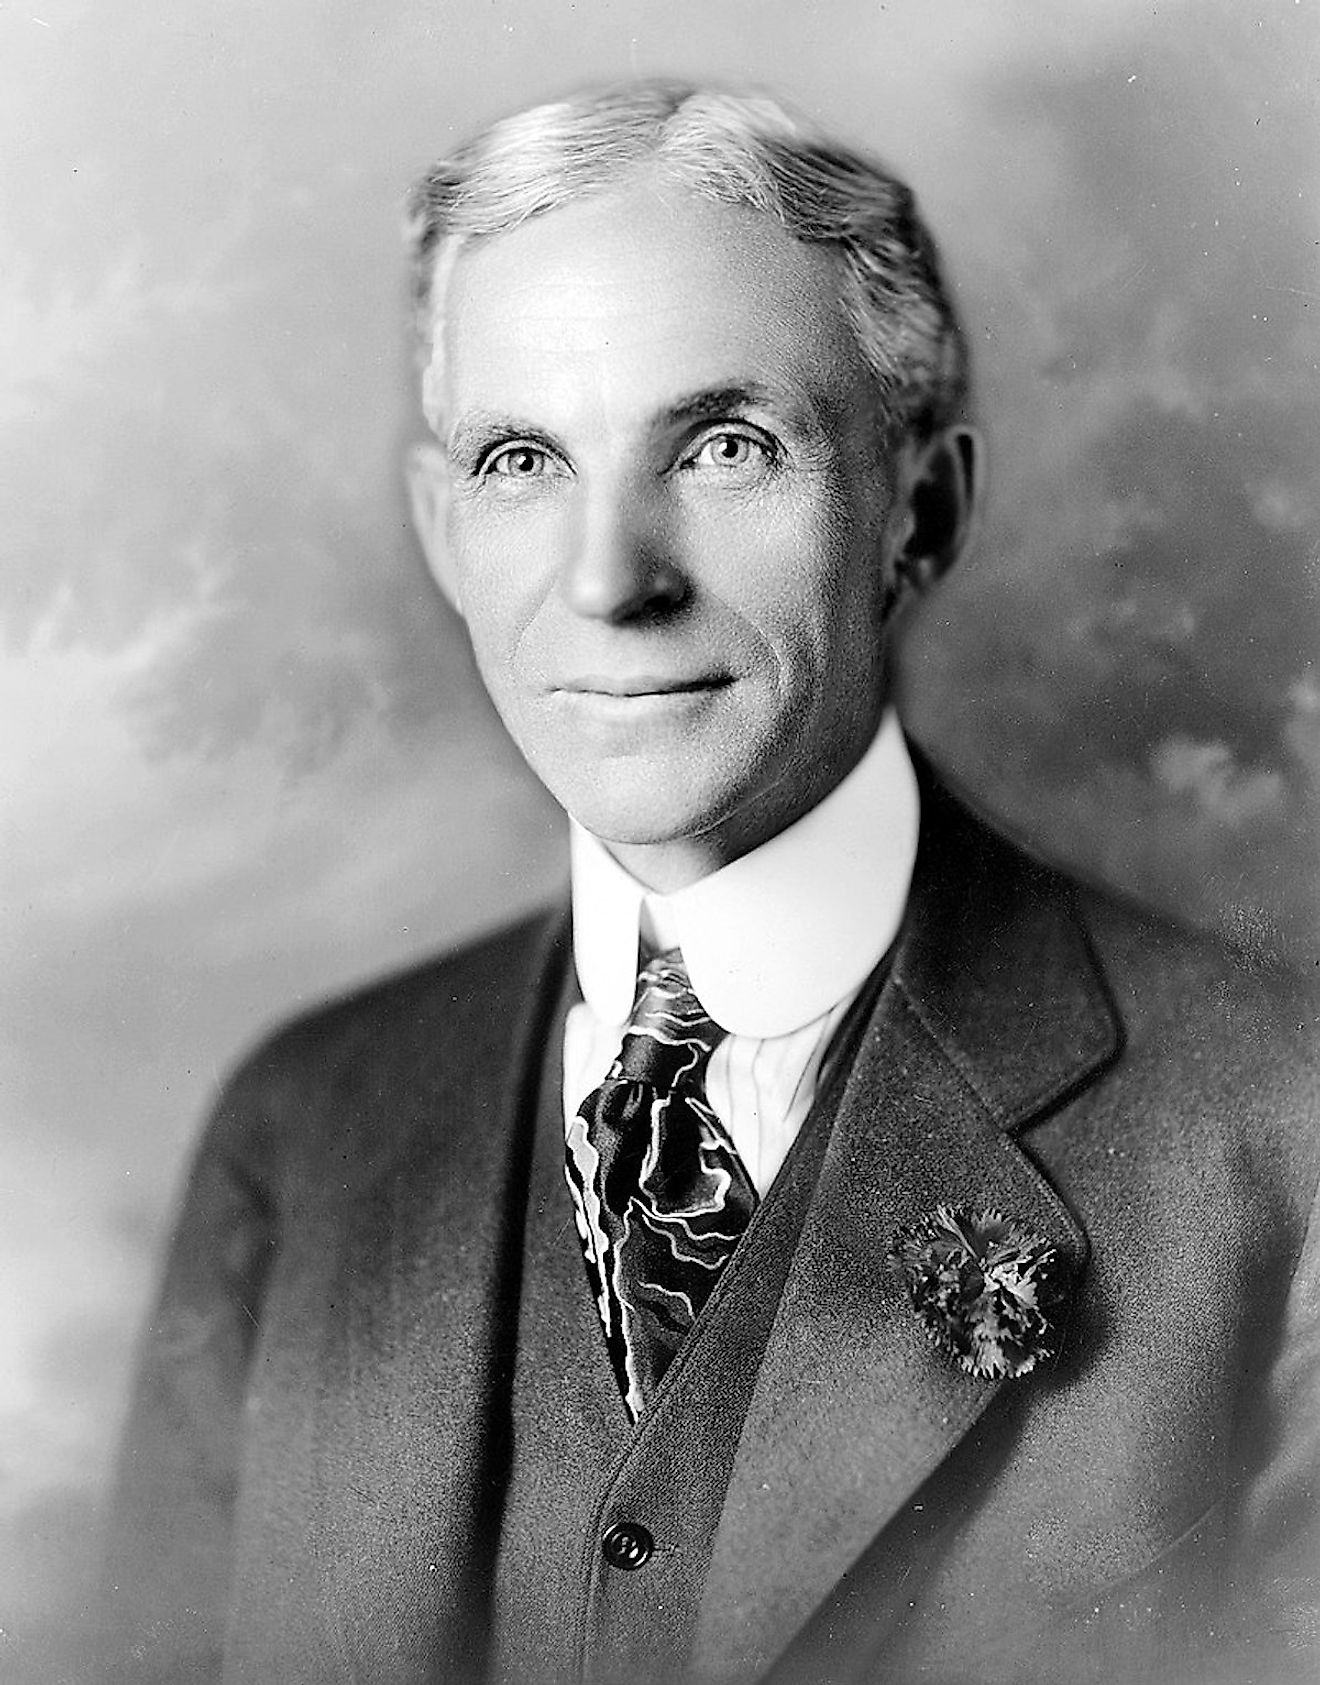 Portrait of Henry Ford. Image credit: Hartsook/Public domain